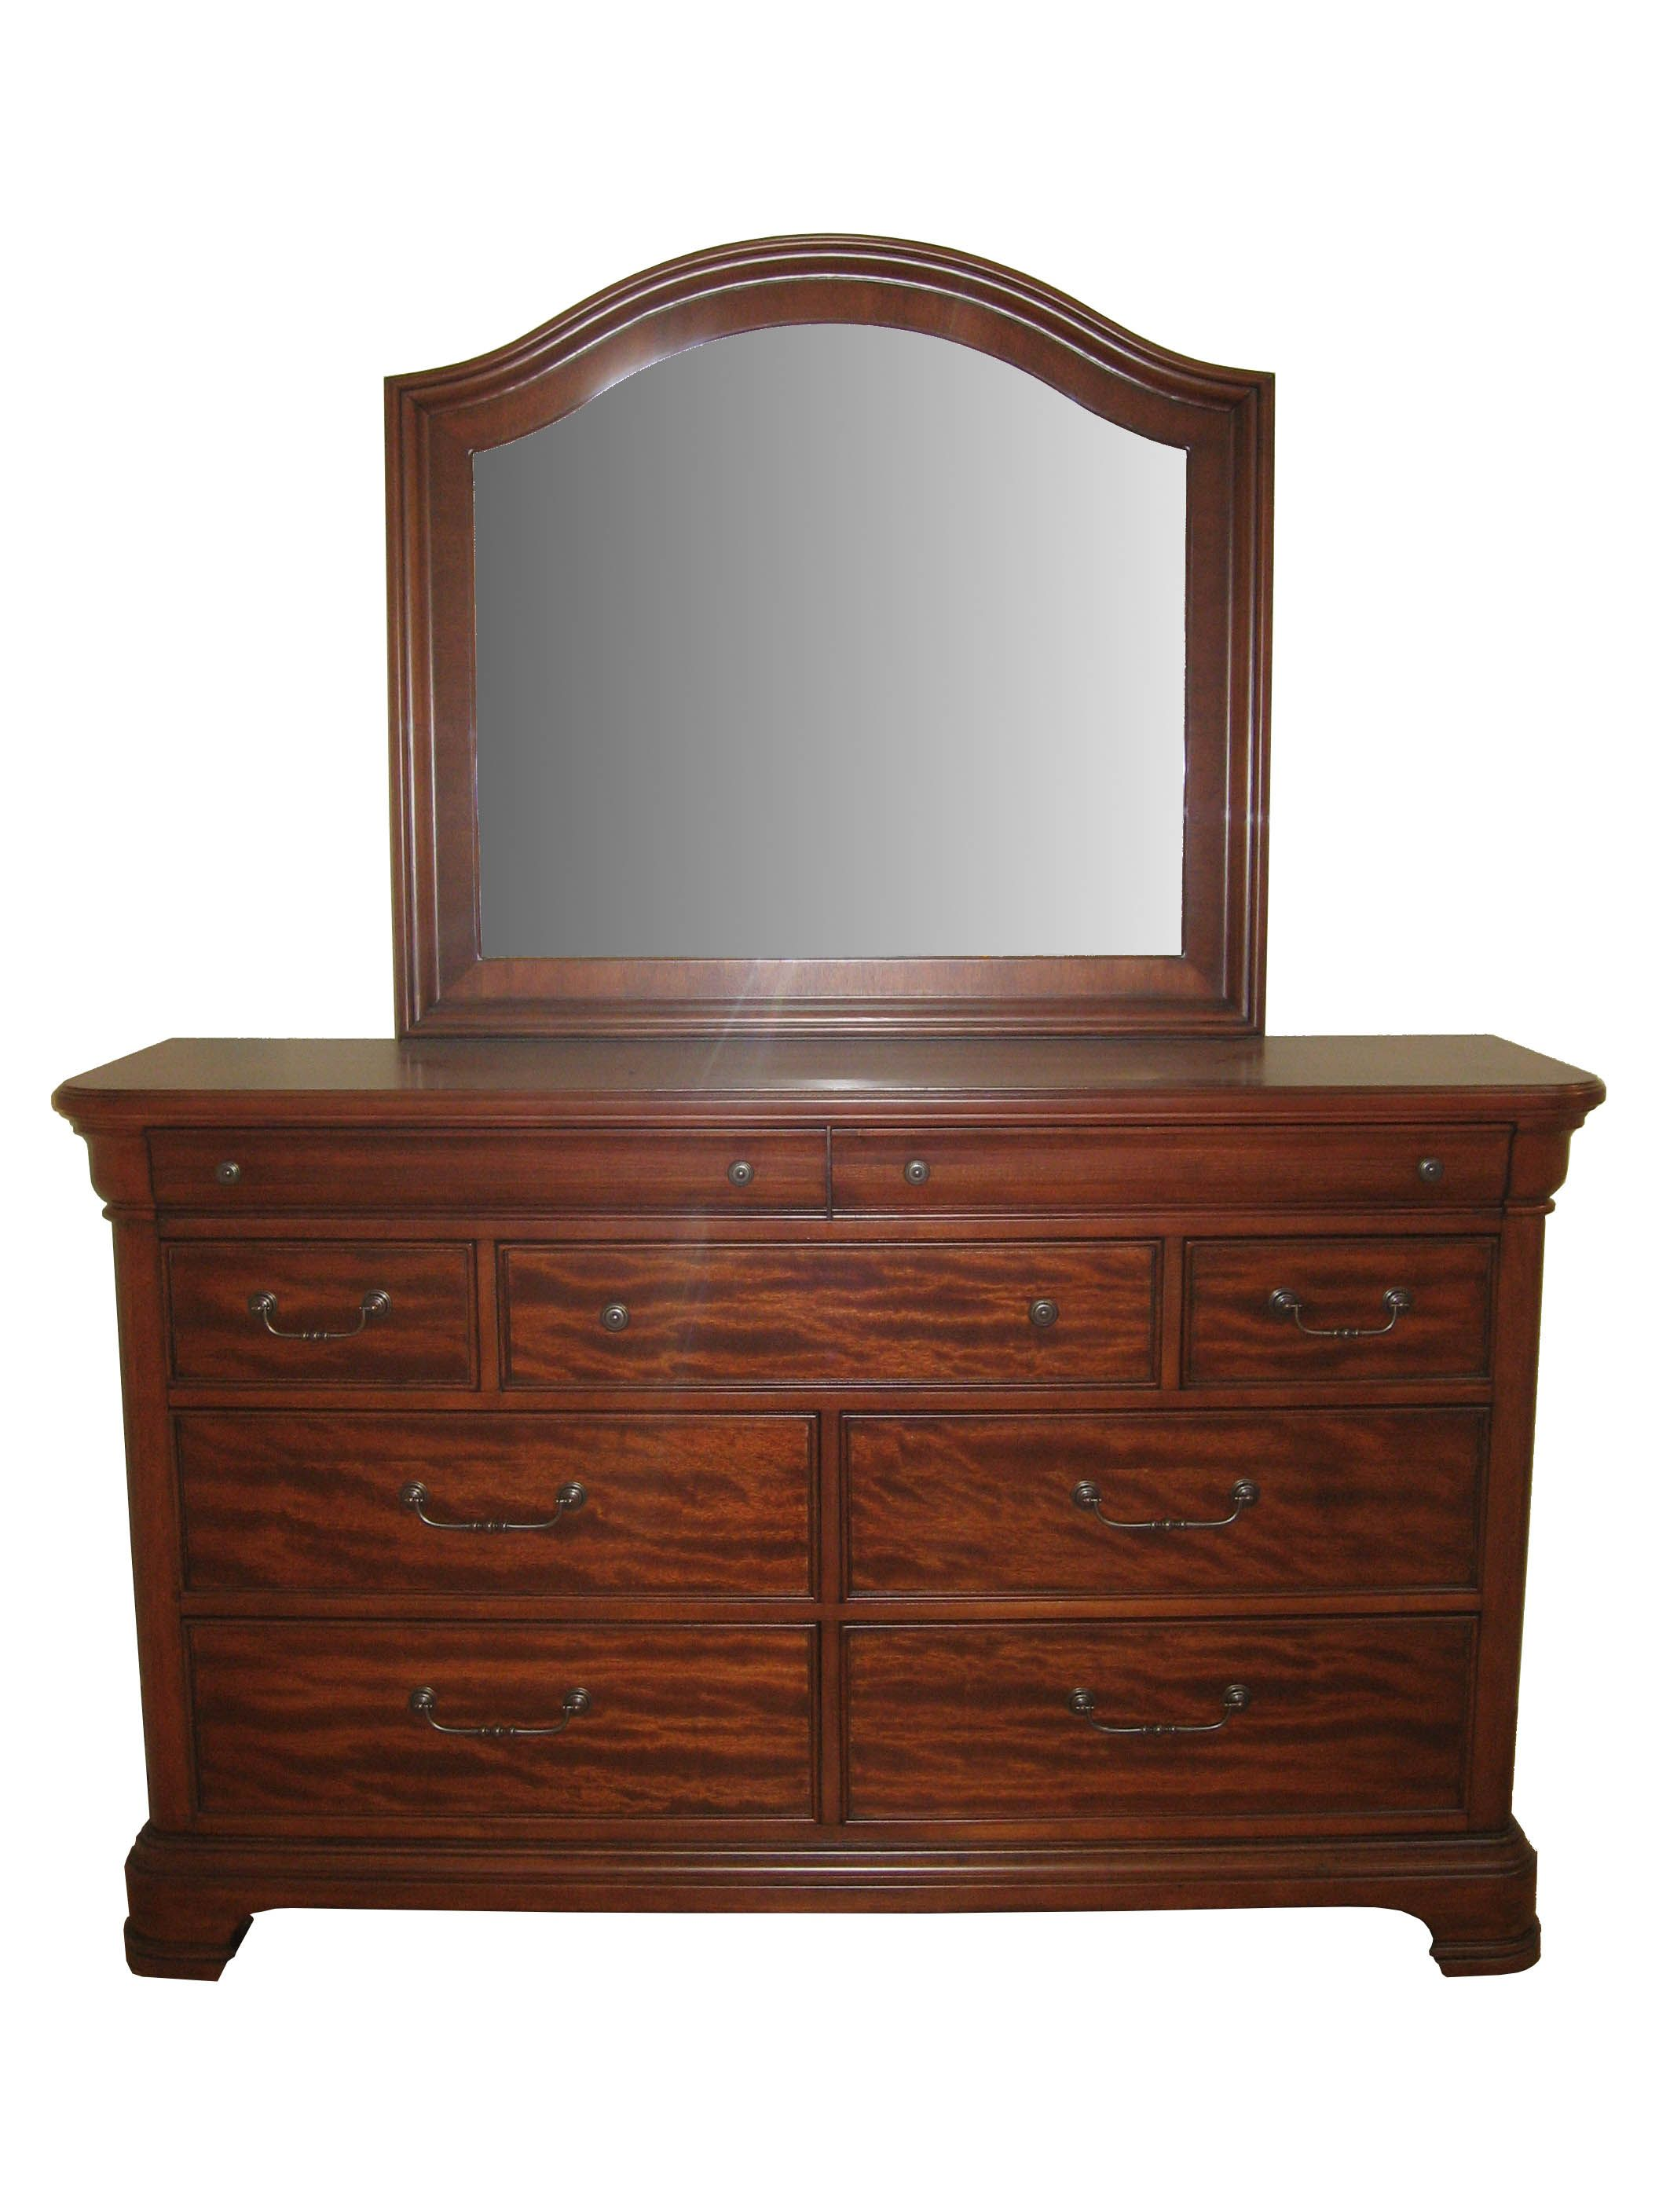 sofa mirror image ashton dresser category mirrors kids place product the collection